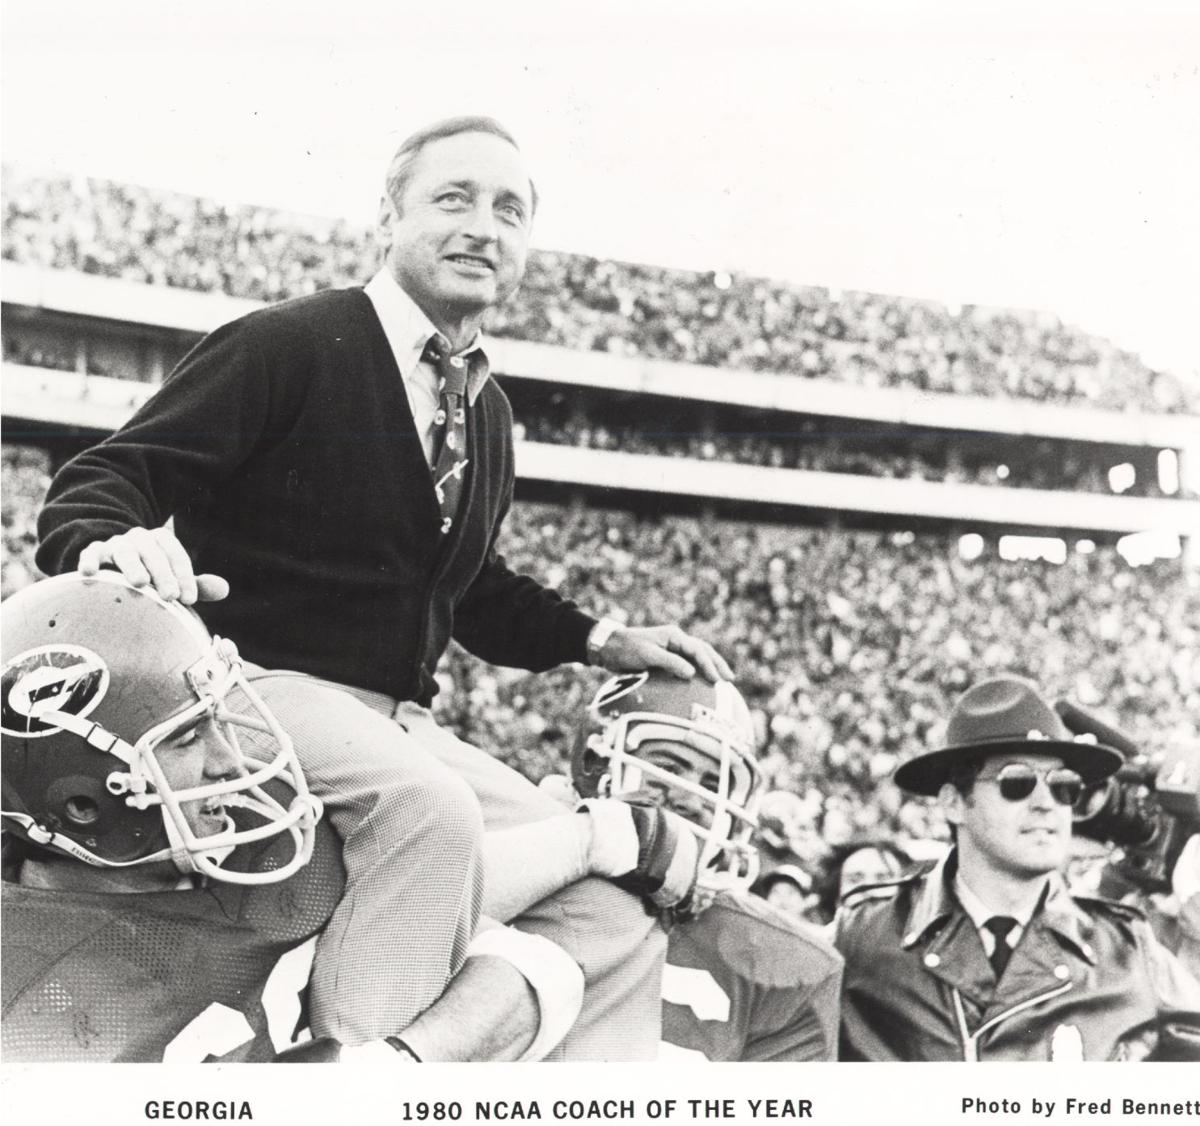 After Years Of Speculation Dooley Field At Sanford Stadium Set To